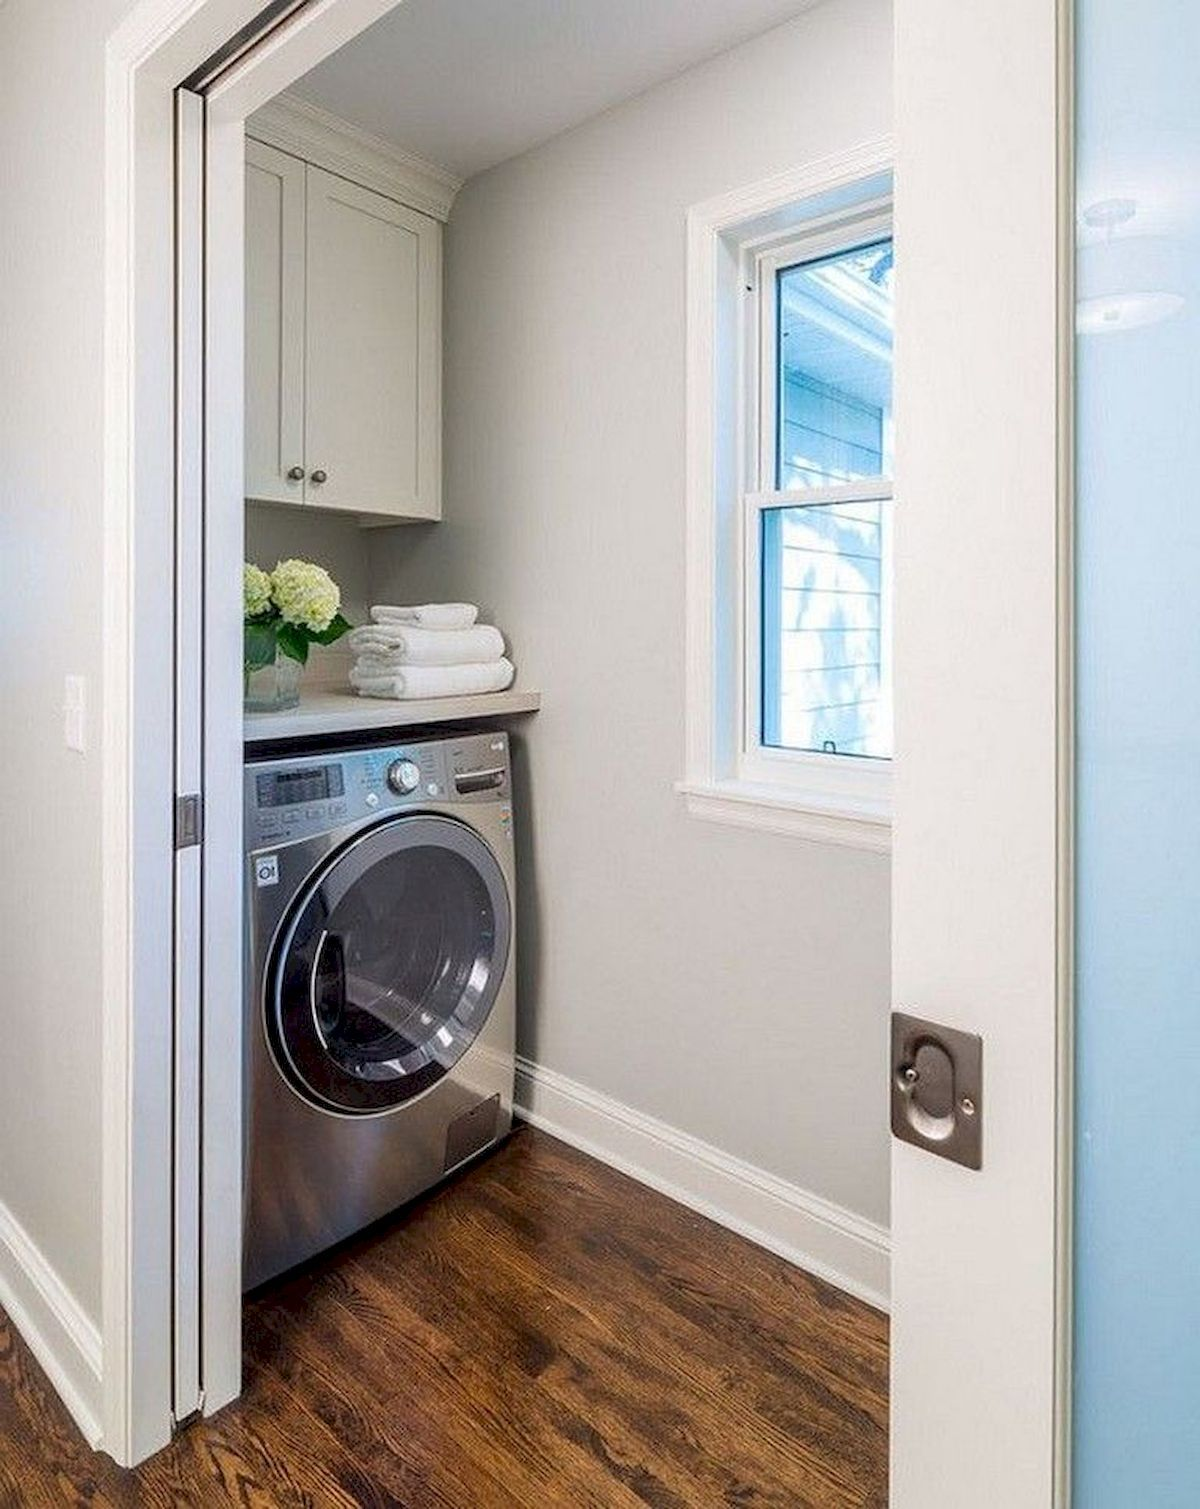 55 Best Small Laundry Room Photo Storage Ideas images